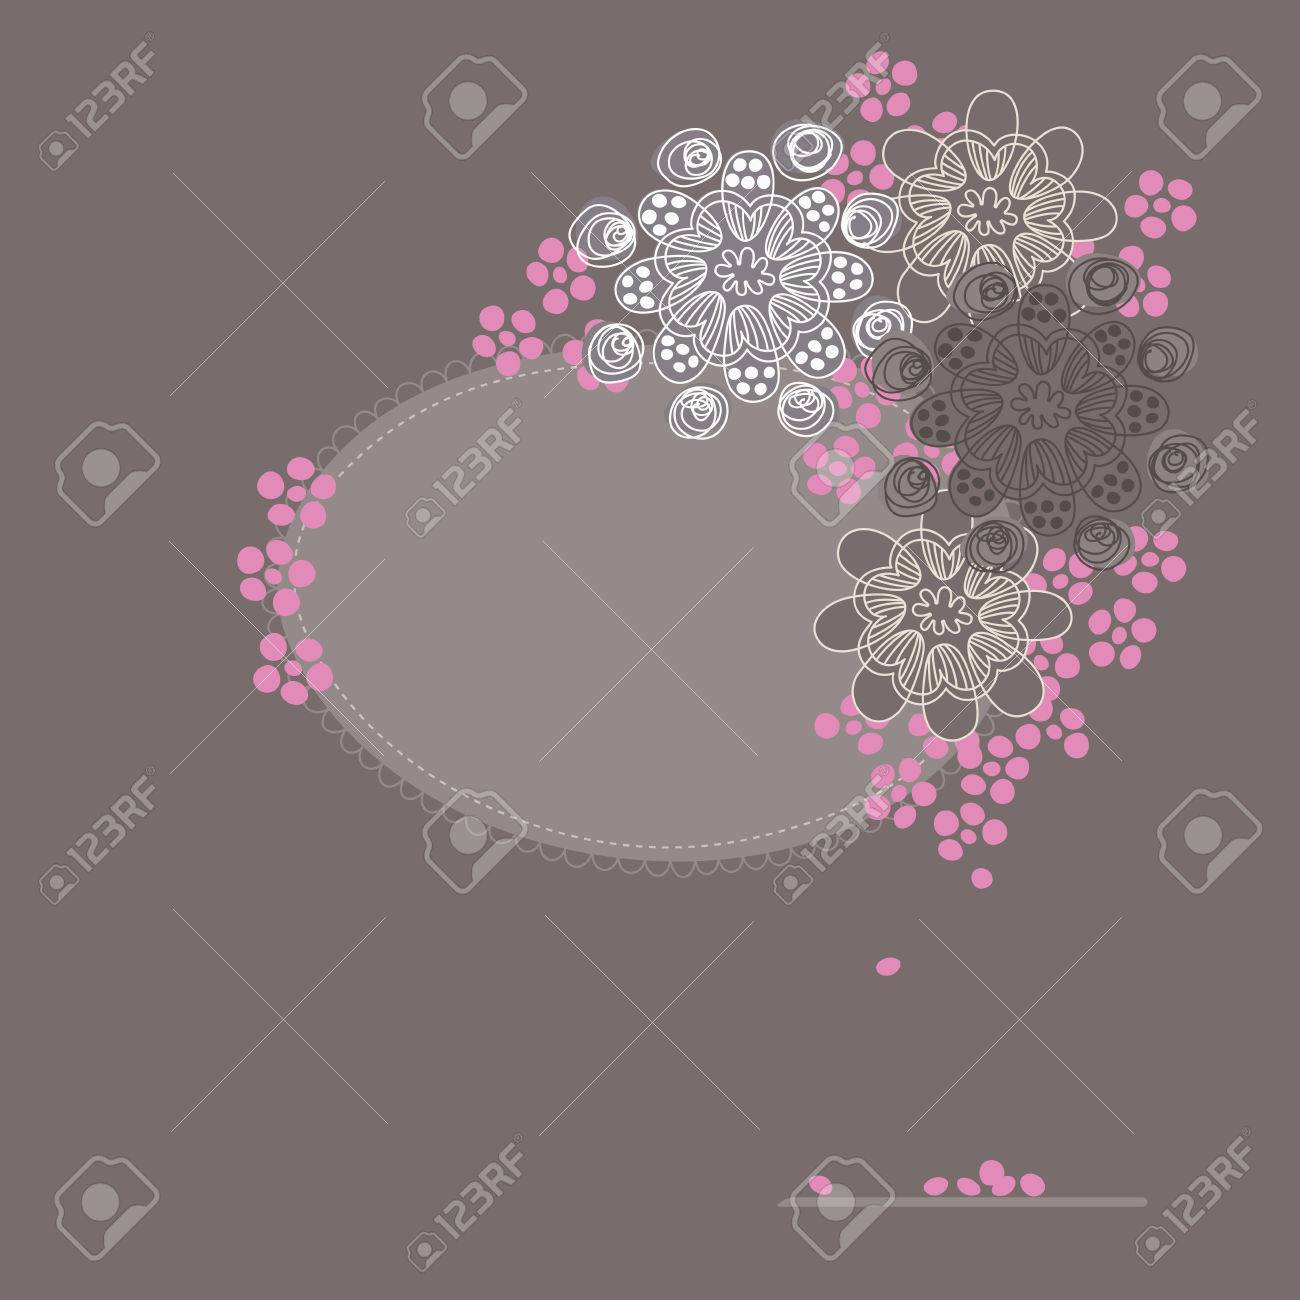 Cherry blossom greeting card Stock Vector - 6175882